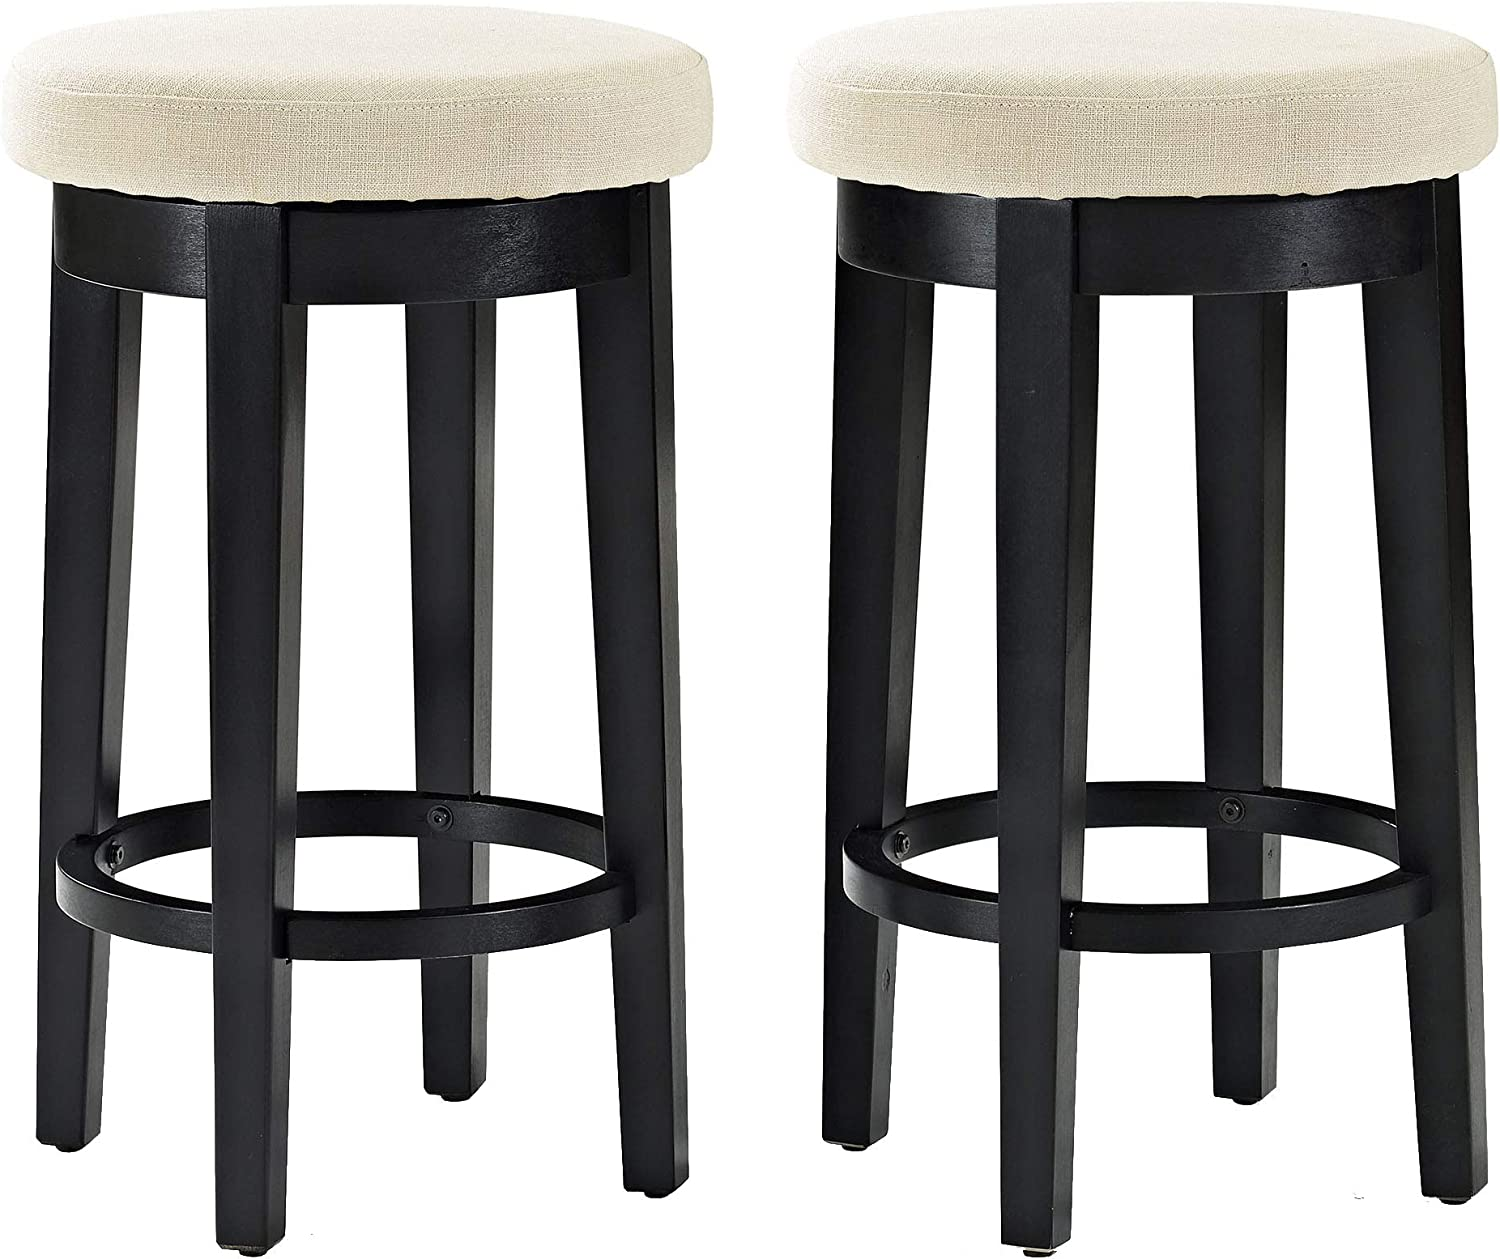 Crosley Furniture CF522026BK-CR Mitchell Swivel Counter Stool (Set of 2), 26-inch, Black with Crème Cushion